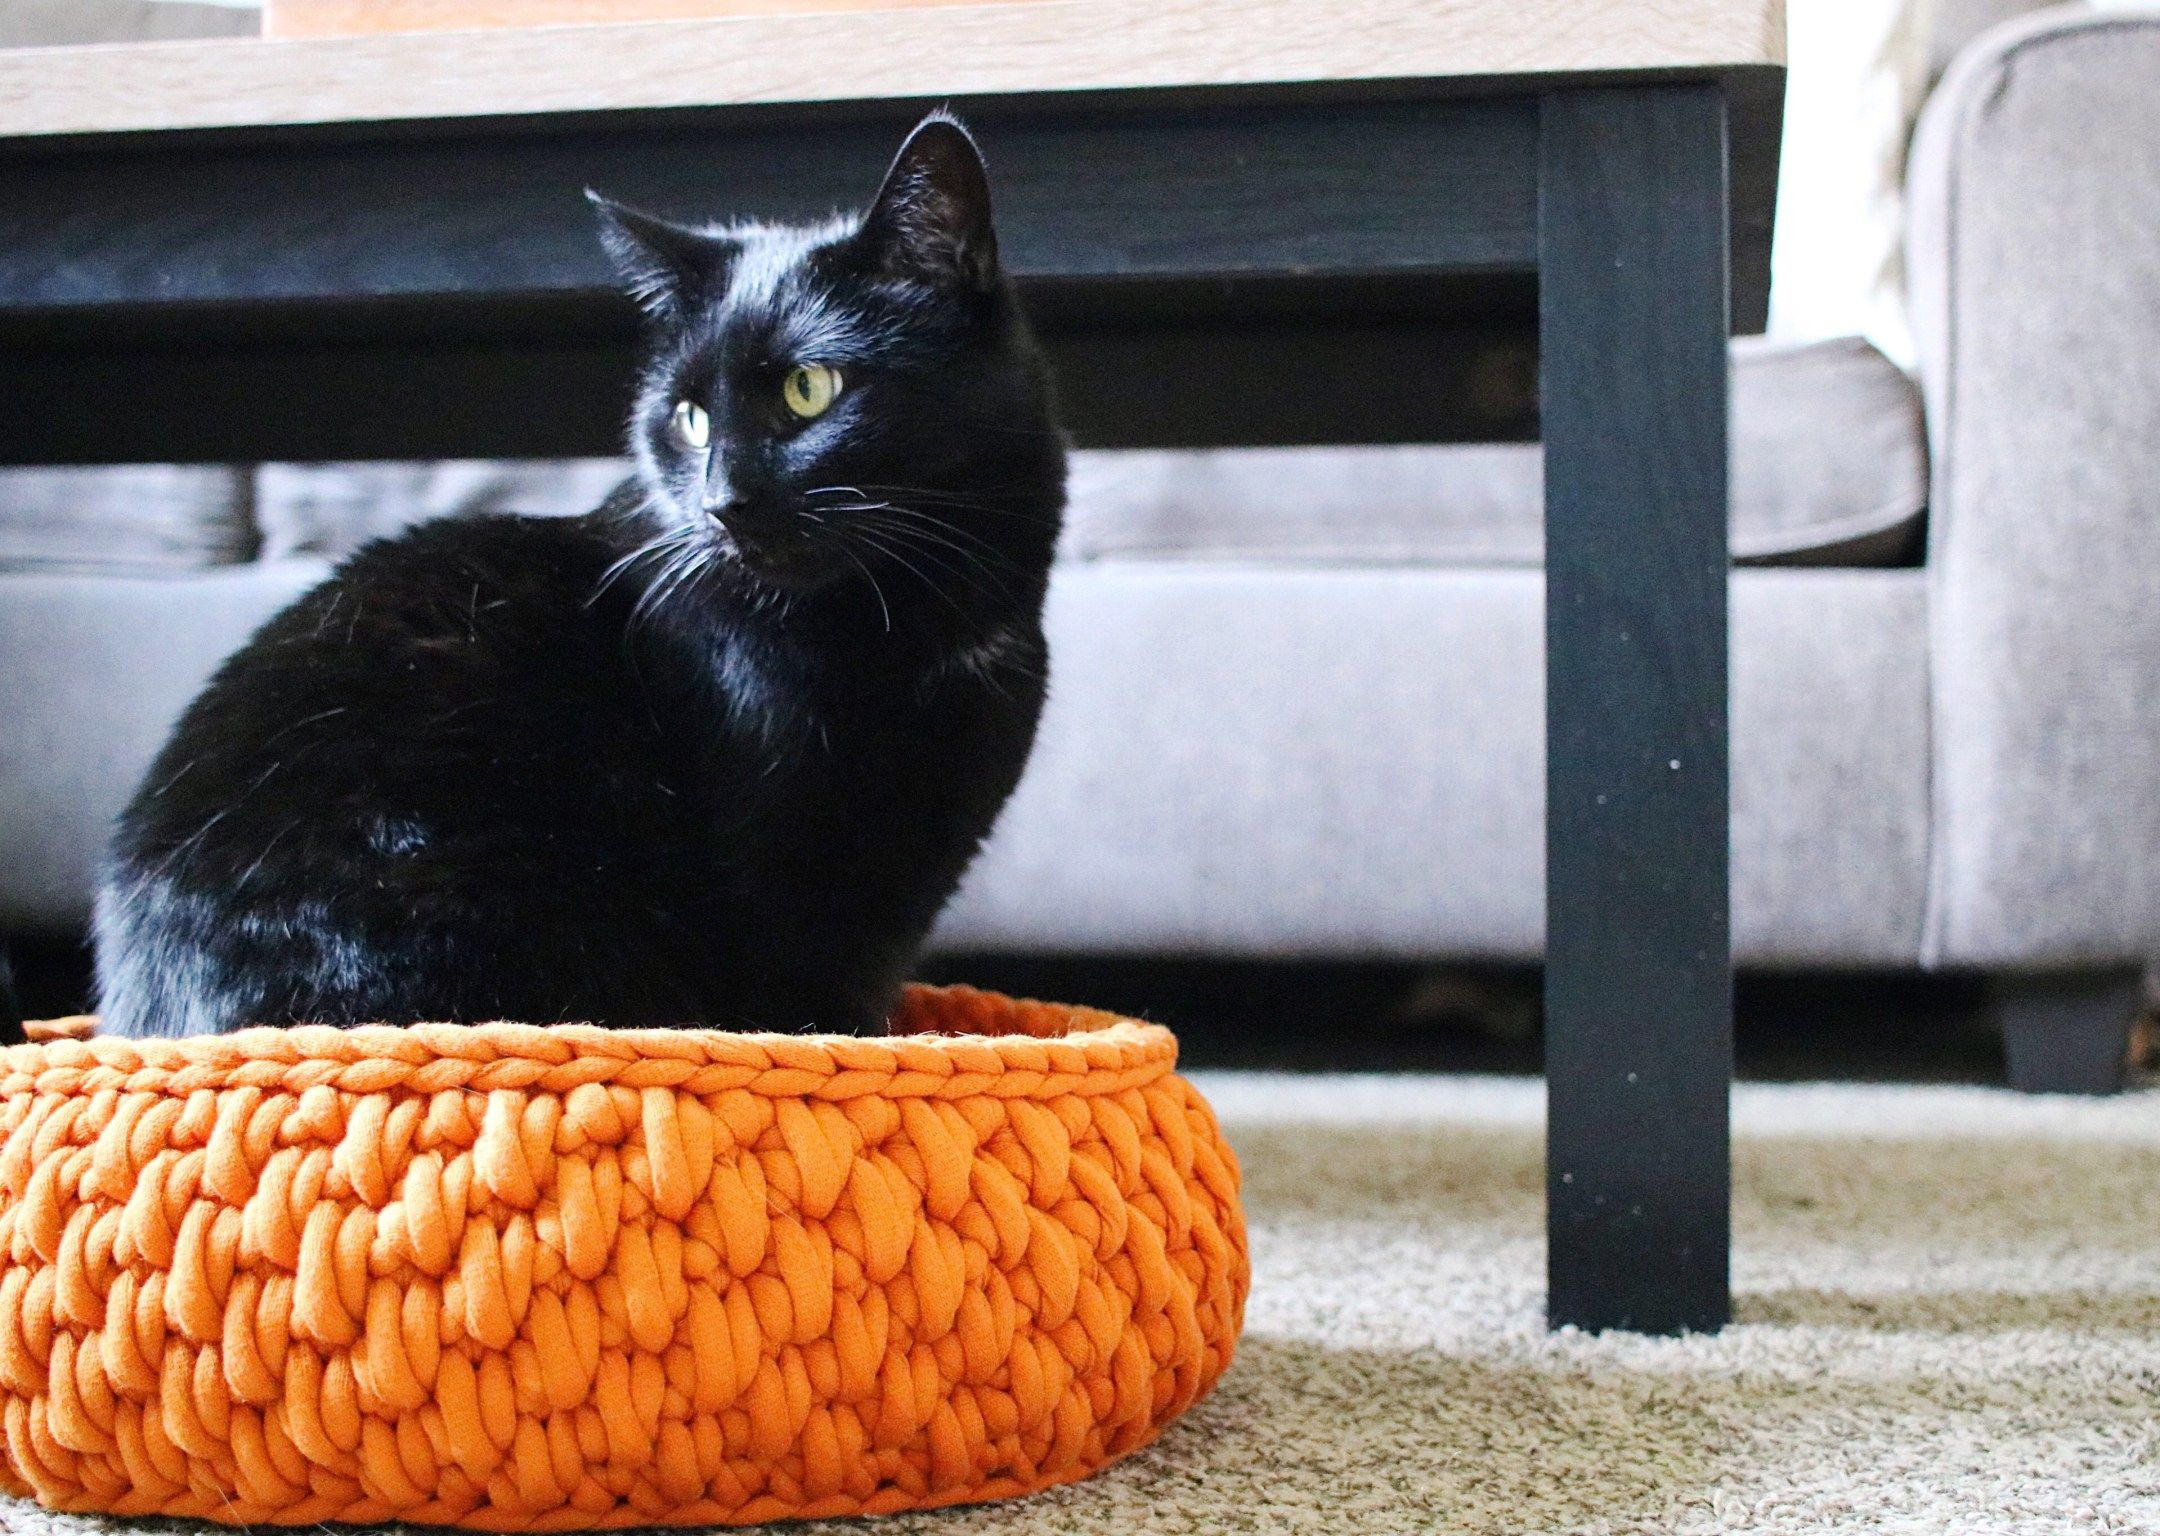 The Big Little Pet Bed A Round Cat Bed Made With Jumbo Yarn Tl Yarn Crafts Crochet Cat Bed Tl Yarn Crafts Pet Bed Pattern